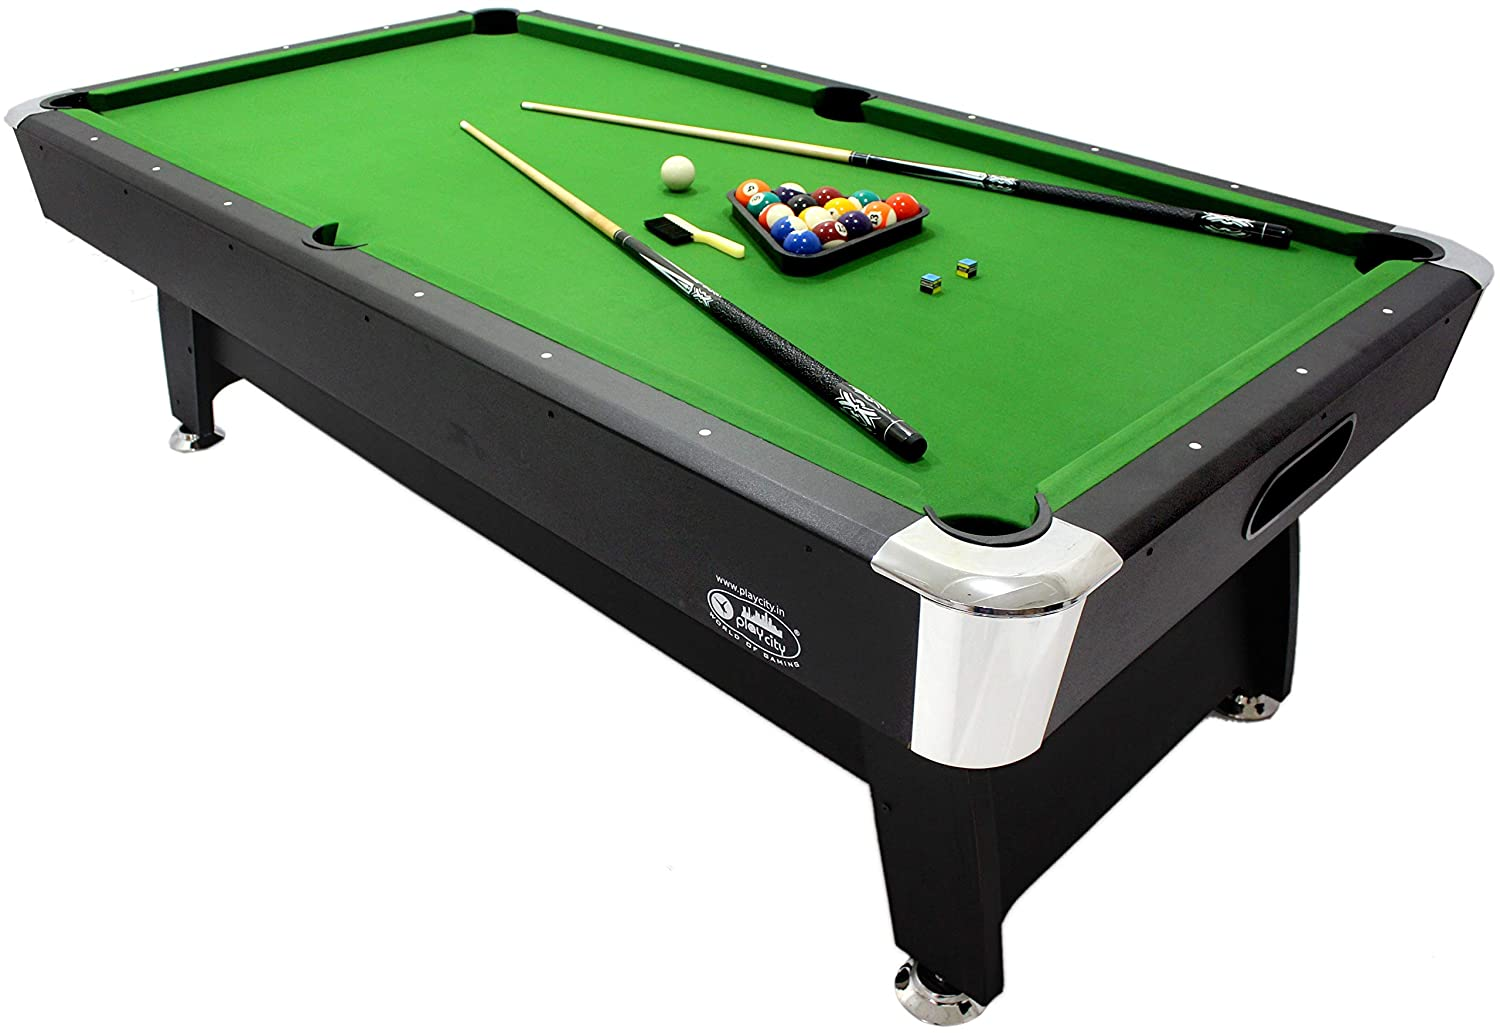 Buy Play In The City Pool Table 8Ft. X 4Ft Green American Style